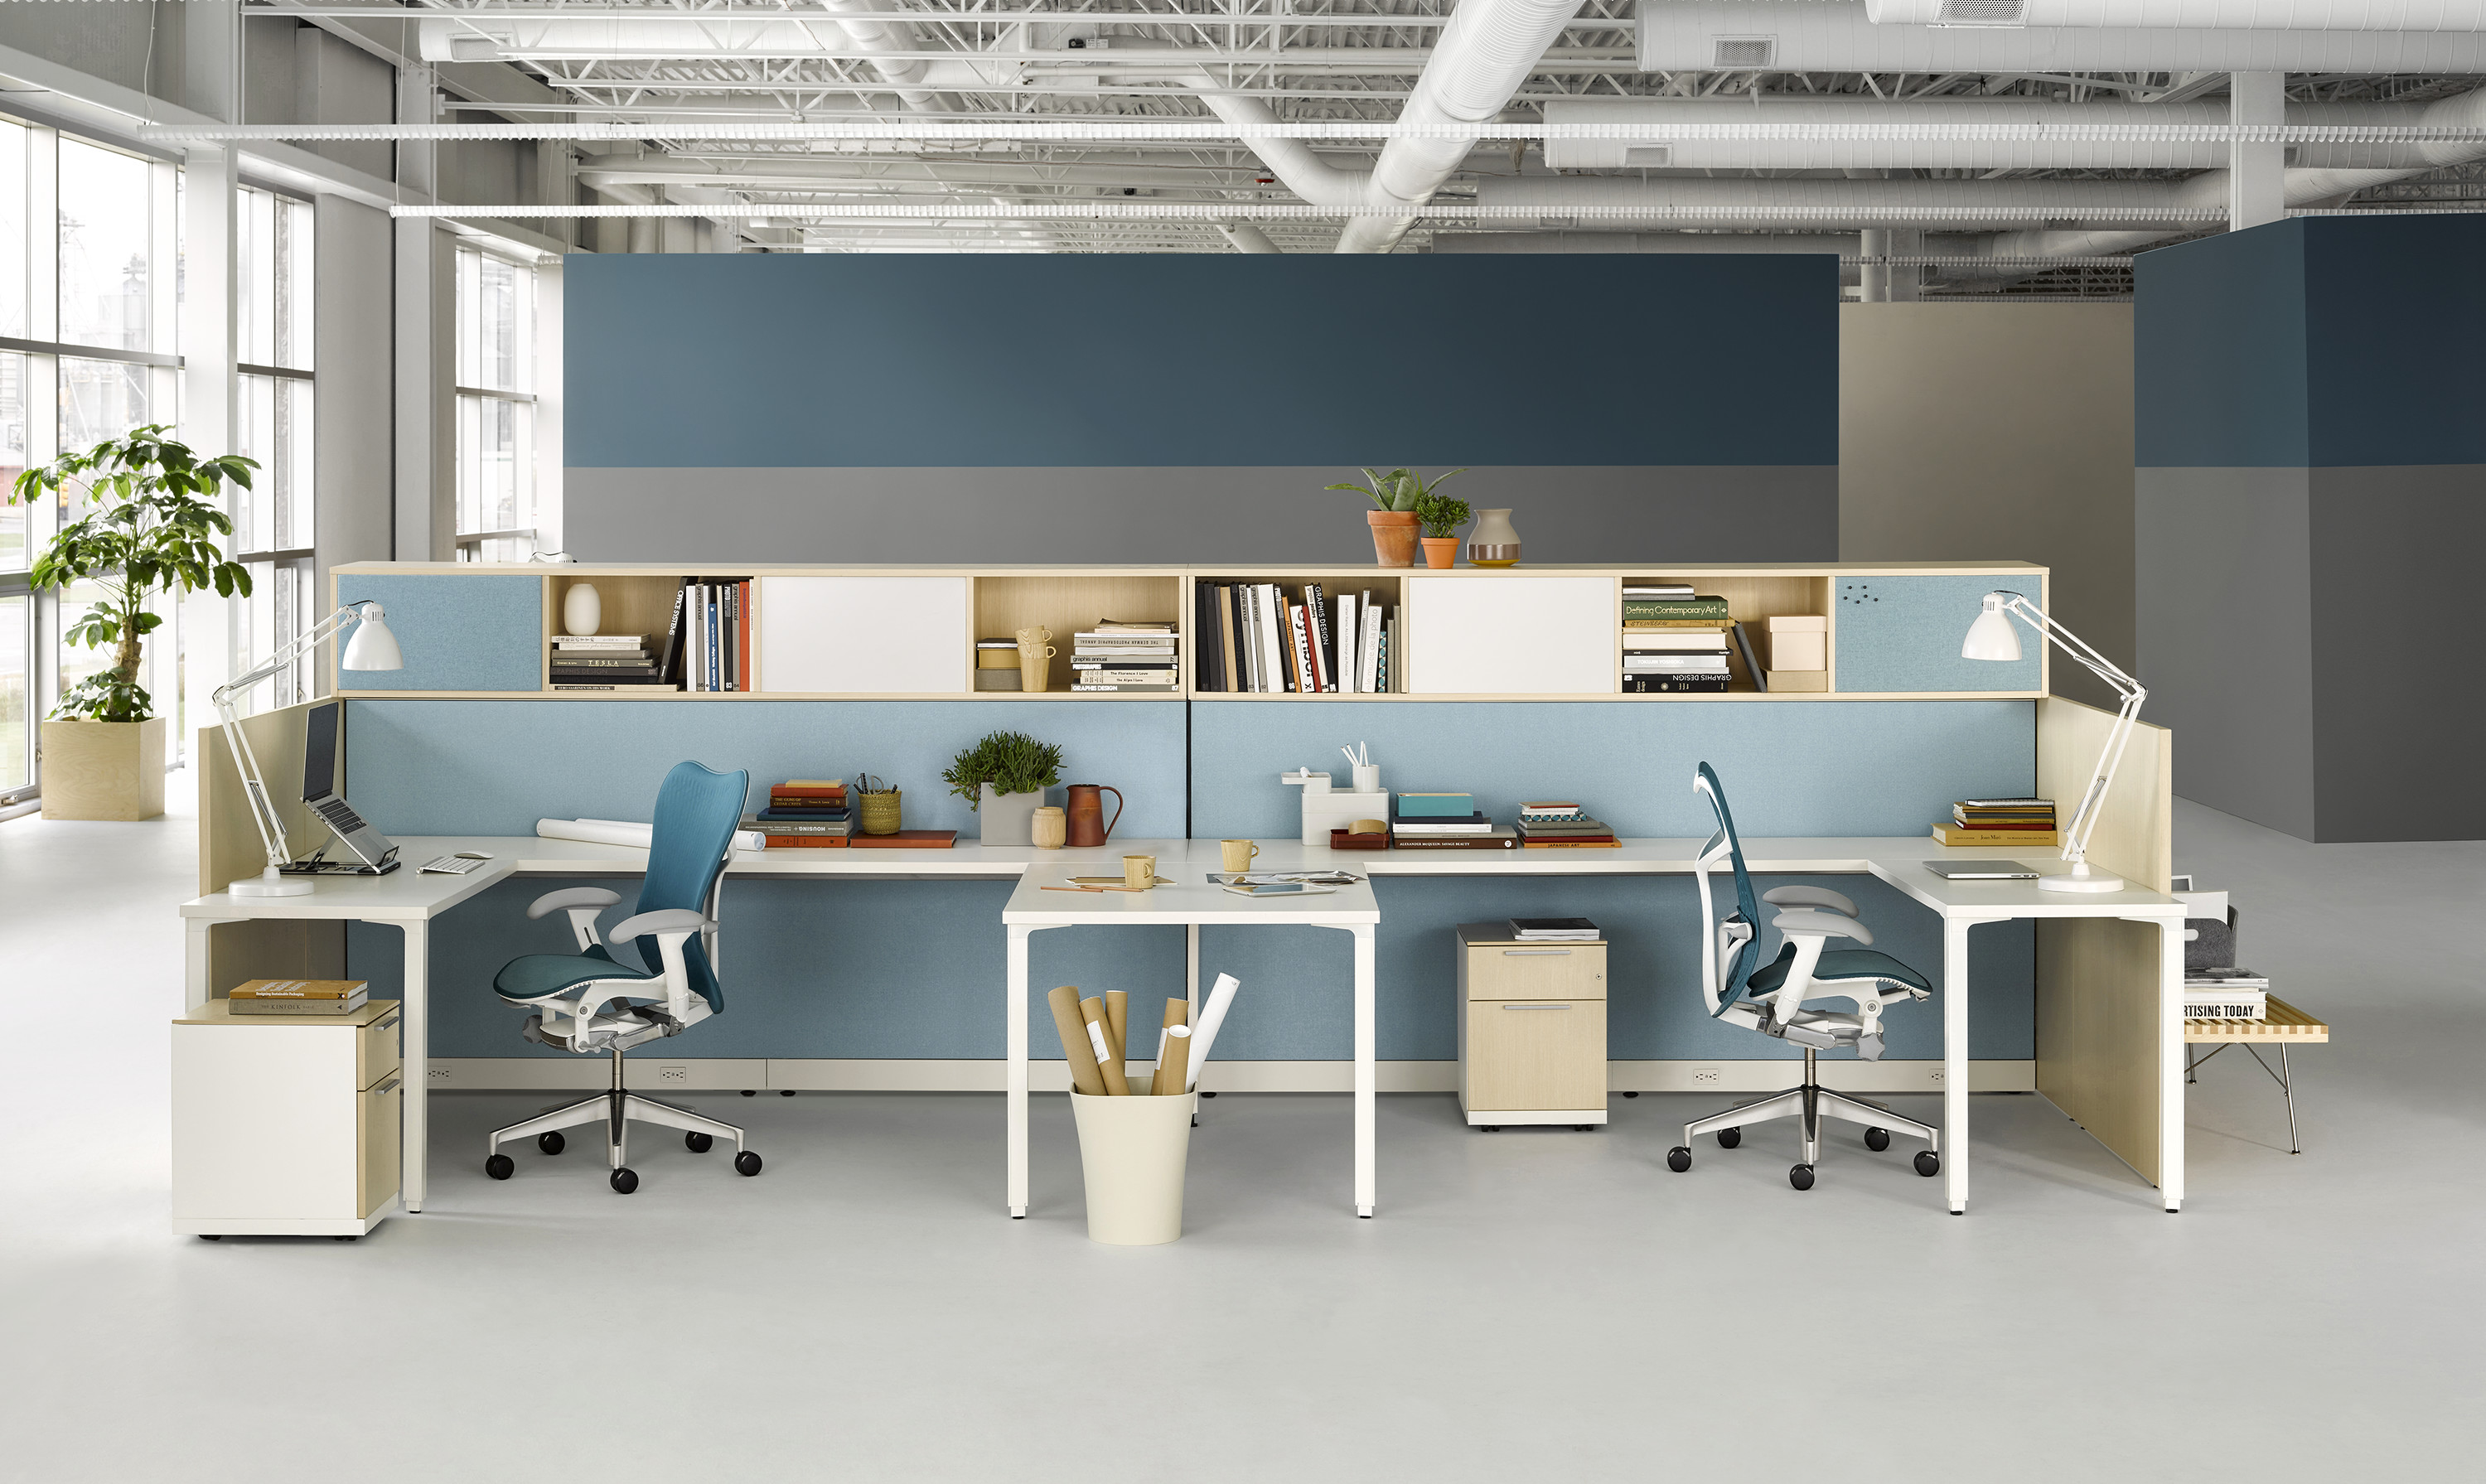 Office space design and planning where to start for Office room layout